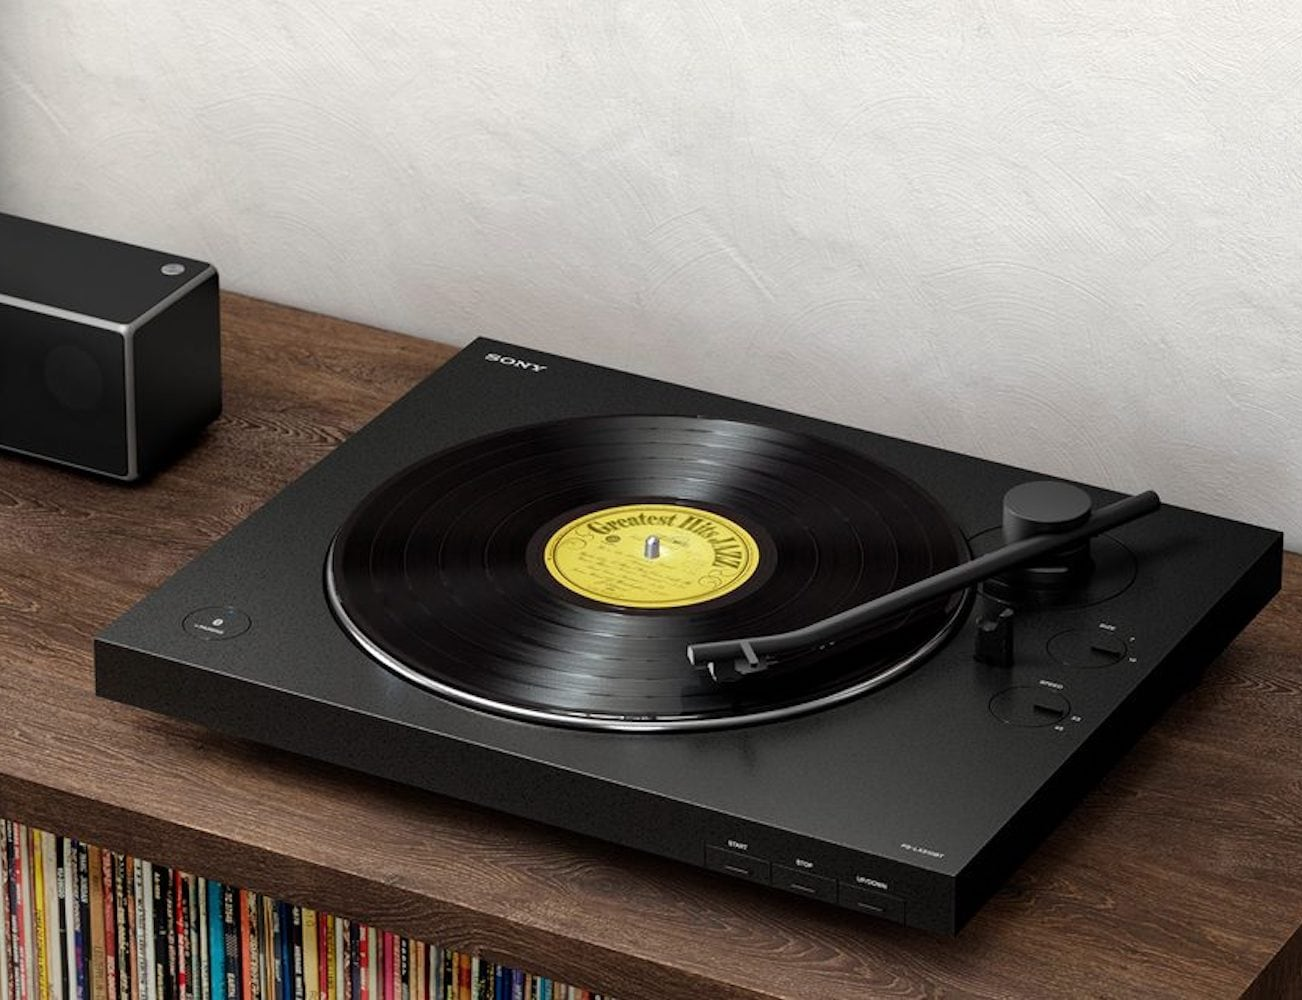 Sony Bluetooth Vinyl Turntable is a modern record player